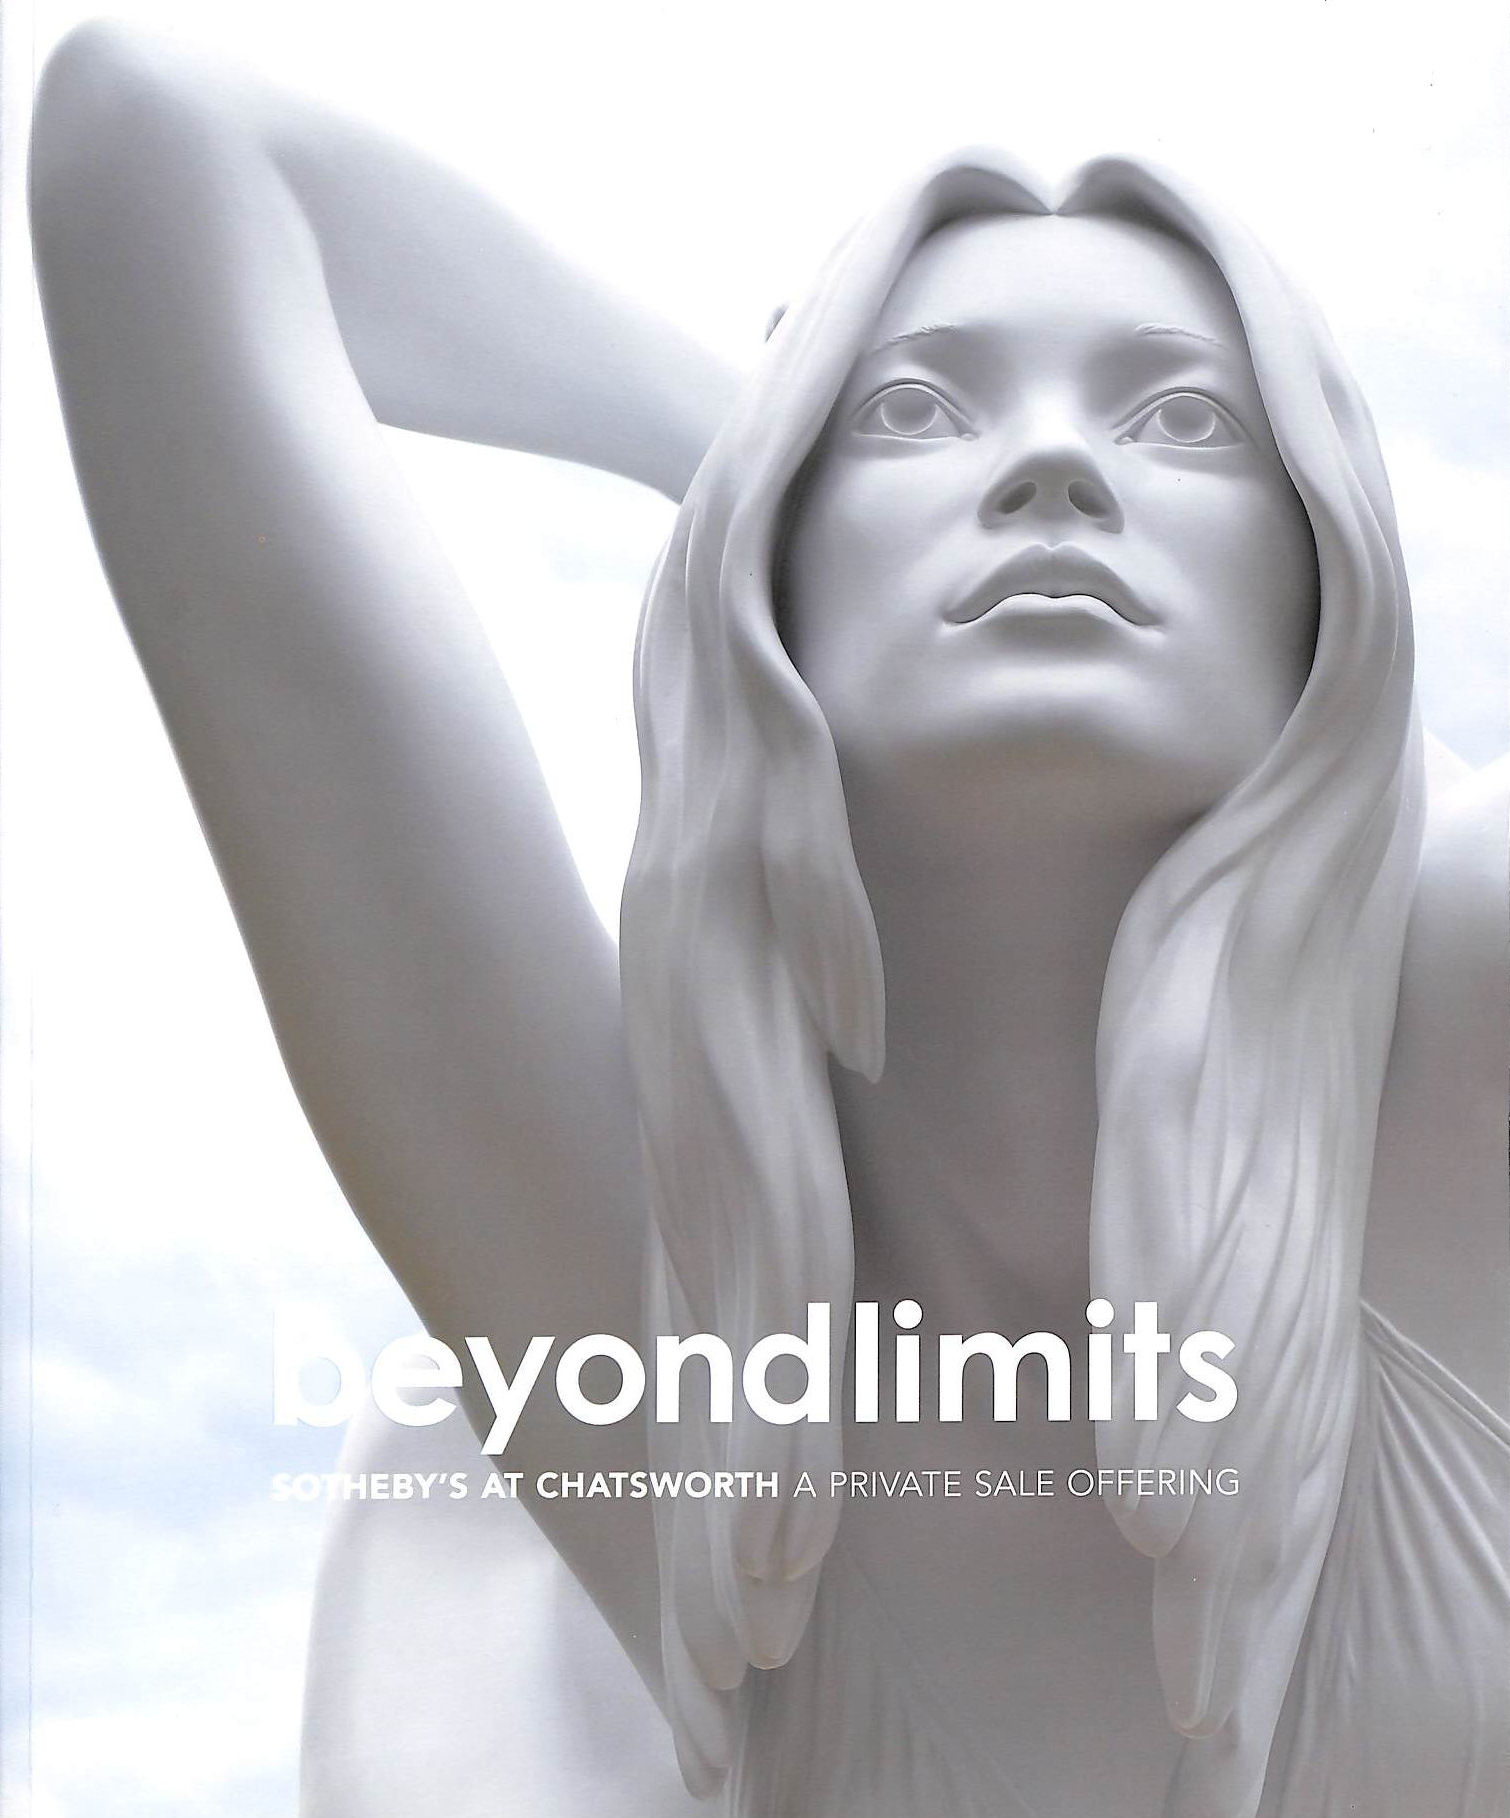 Image for Beyond limits Sotheby's At Chatsworth